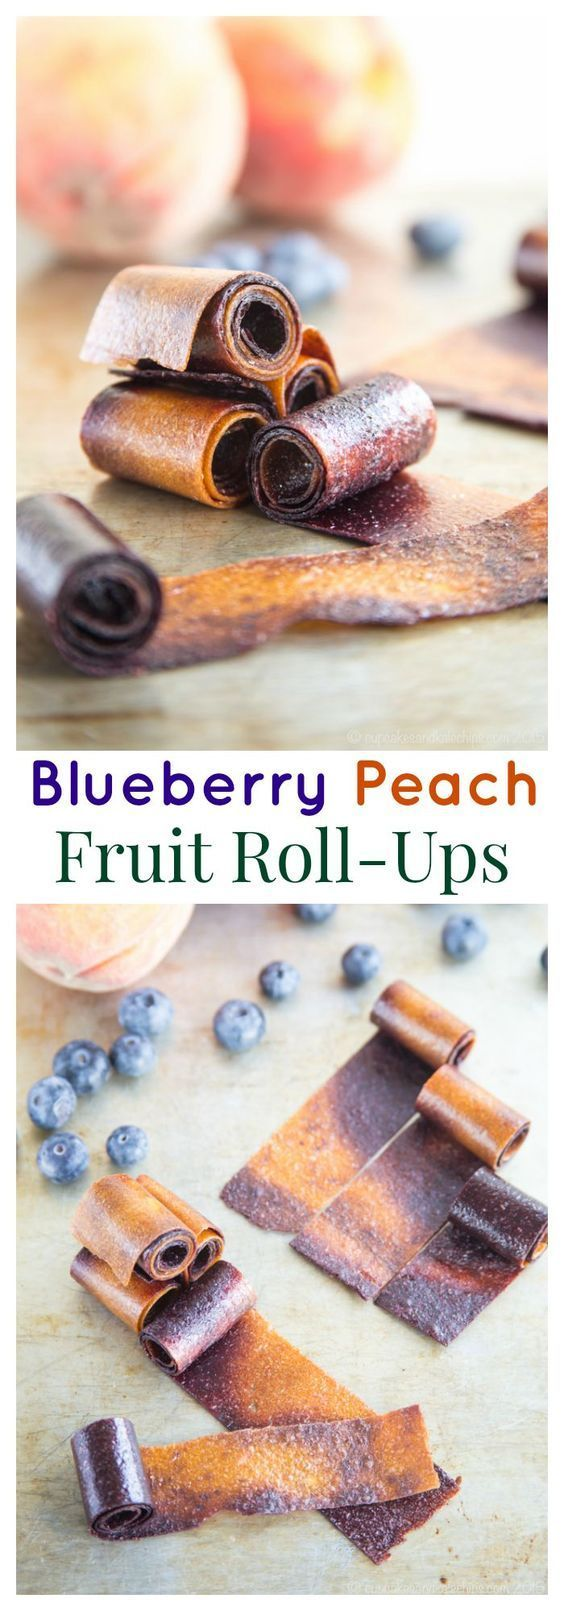 Blueberry Peach Fruit Roll-Ups swirl together two favorite summer fruits into one sweet and healthy snack perfect to pack in a lunchbox. #SundaySupper | http://cupcakesandkalechips.com | gluten free, vegan, paleo recipe